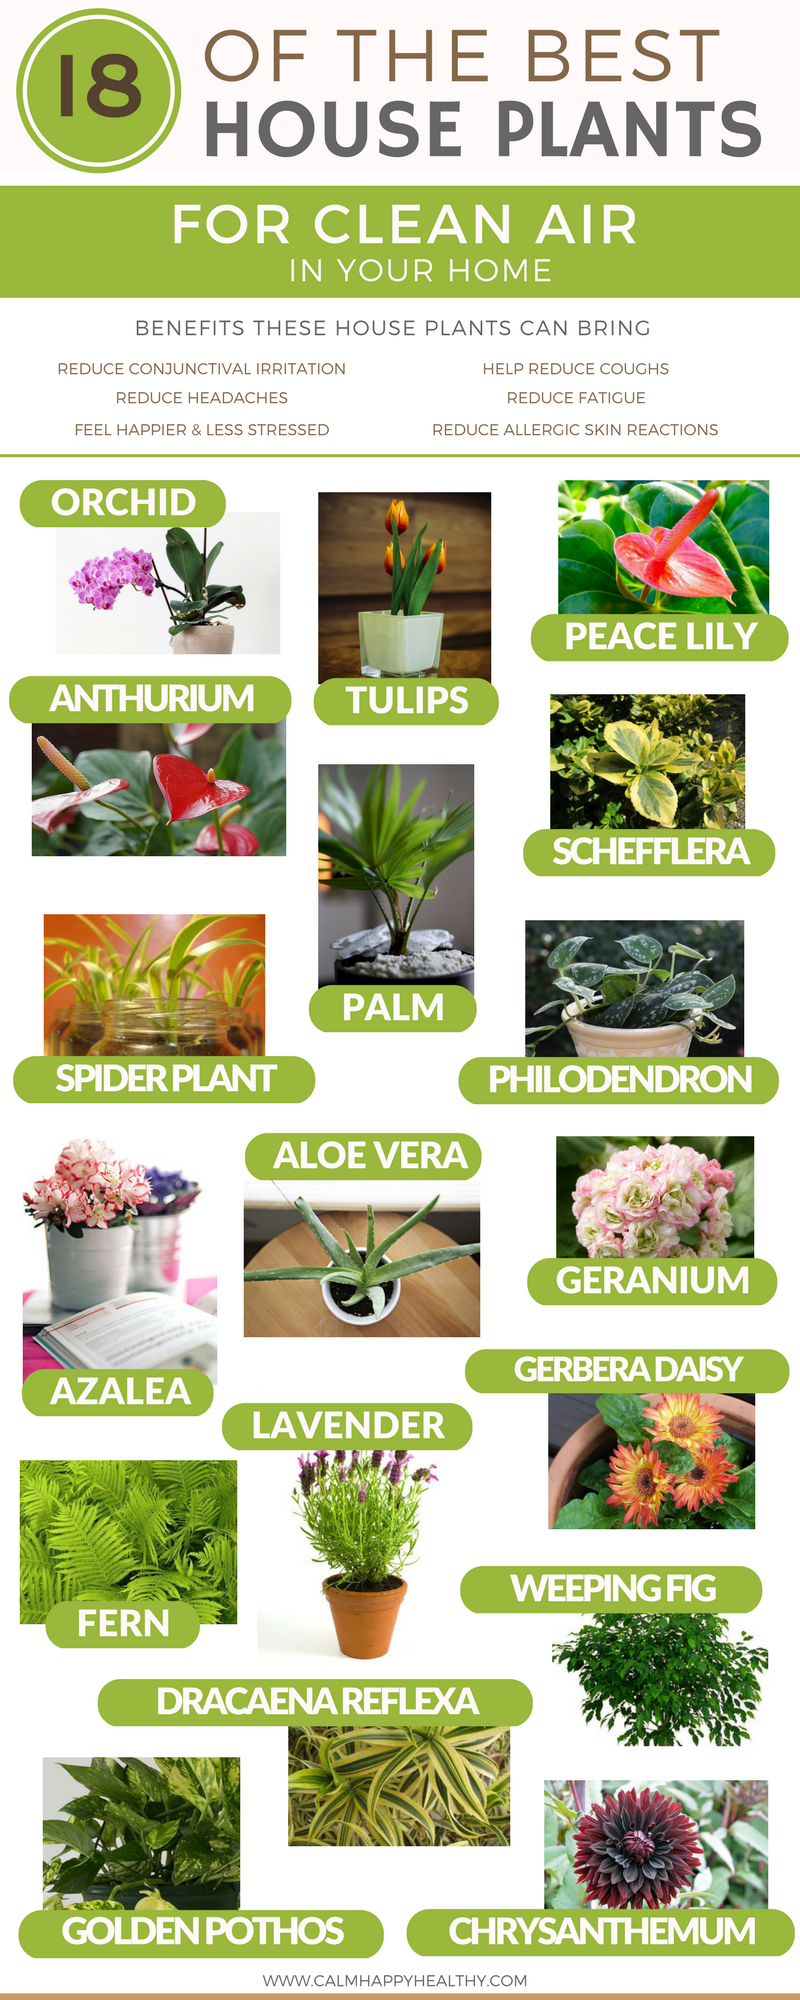 Indoor Gardening Plants 18 of the best indoor house plants to help purify the air detox we look into the 18 best indoor house plants to help purify the air and detox your home workwithnaturefo